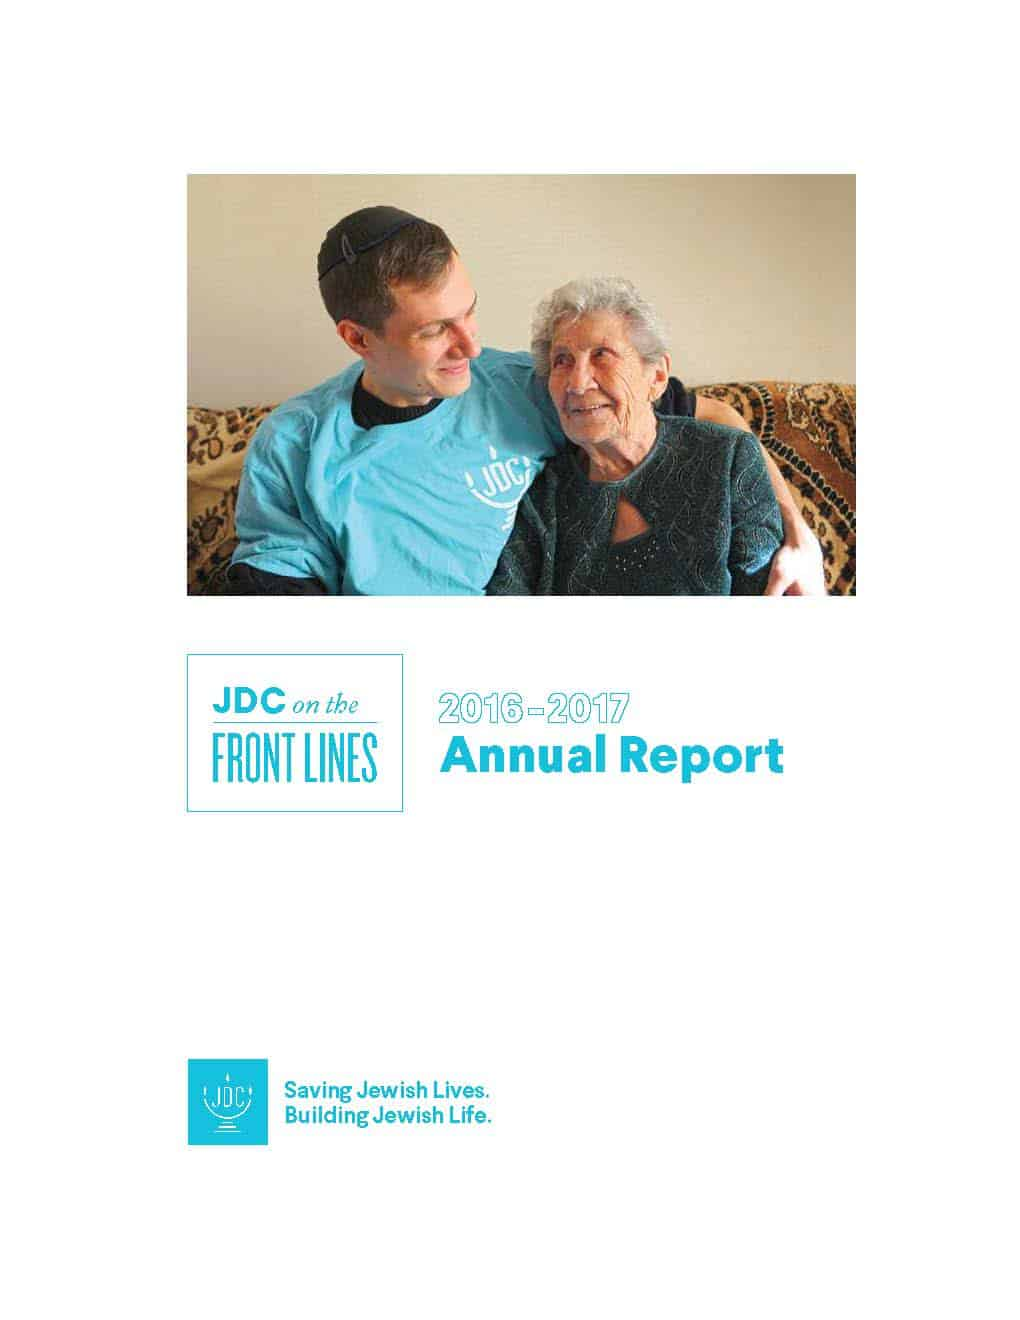 JDC's Annual Report 2017 in which a JDC homecare worker in the former Soviet Union embraces an elderly client on her couch.